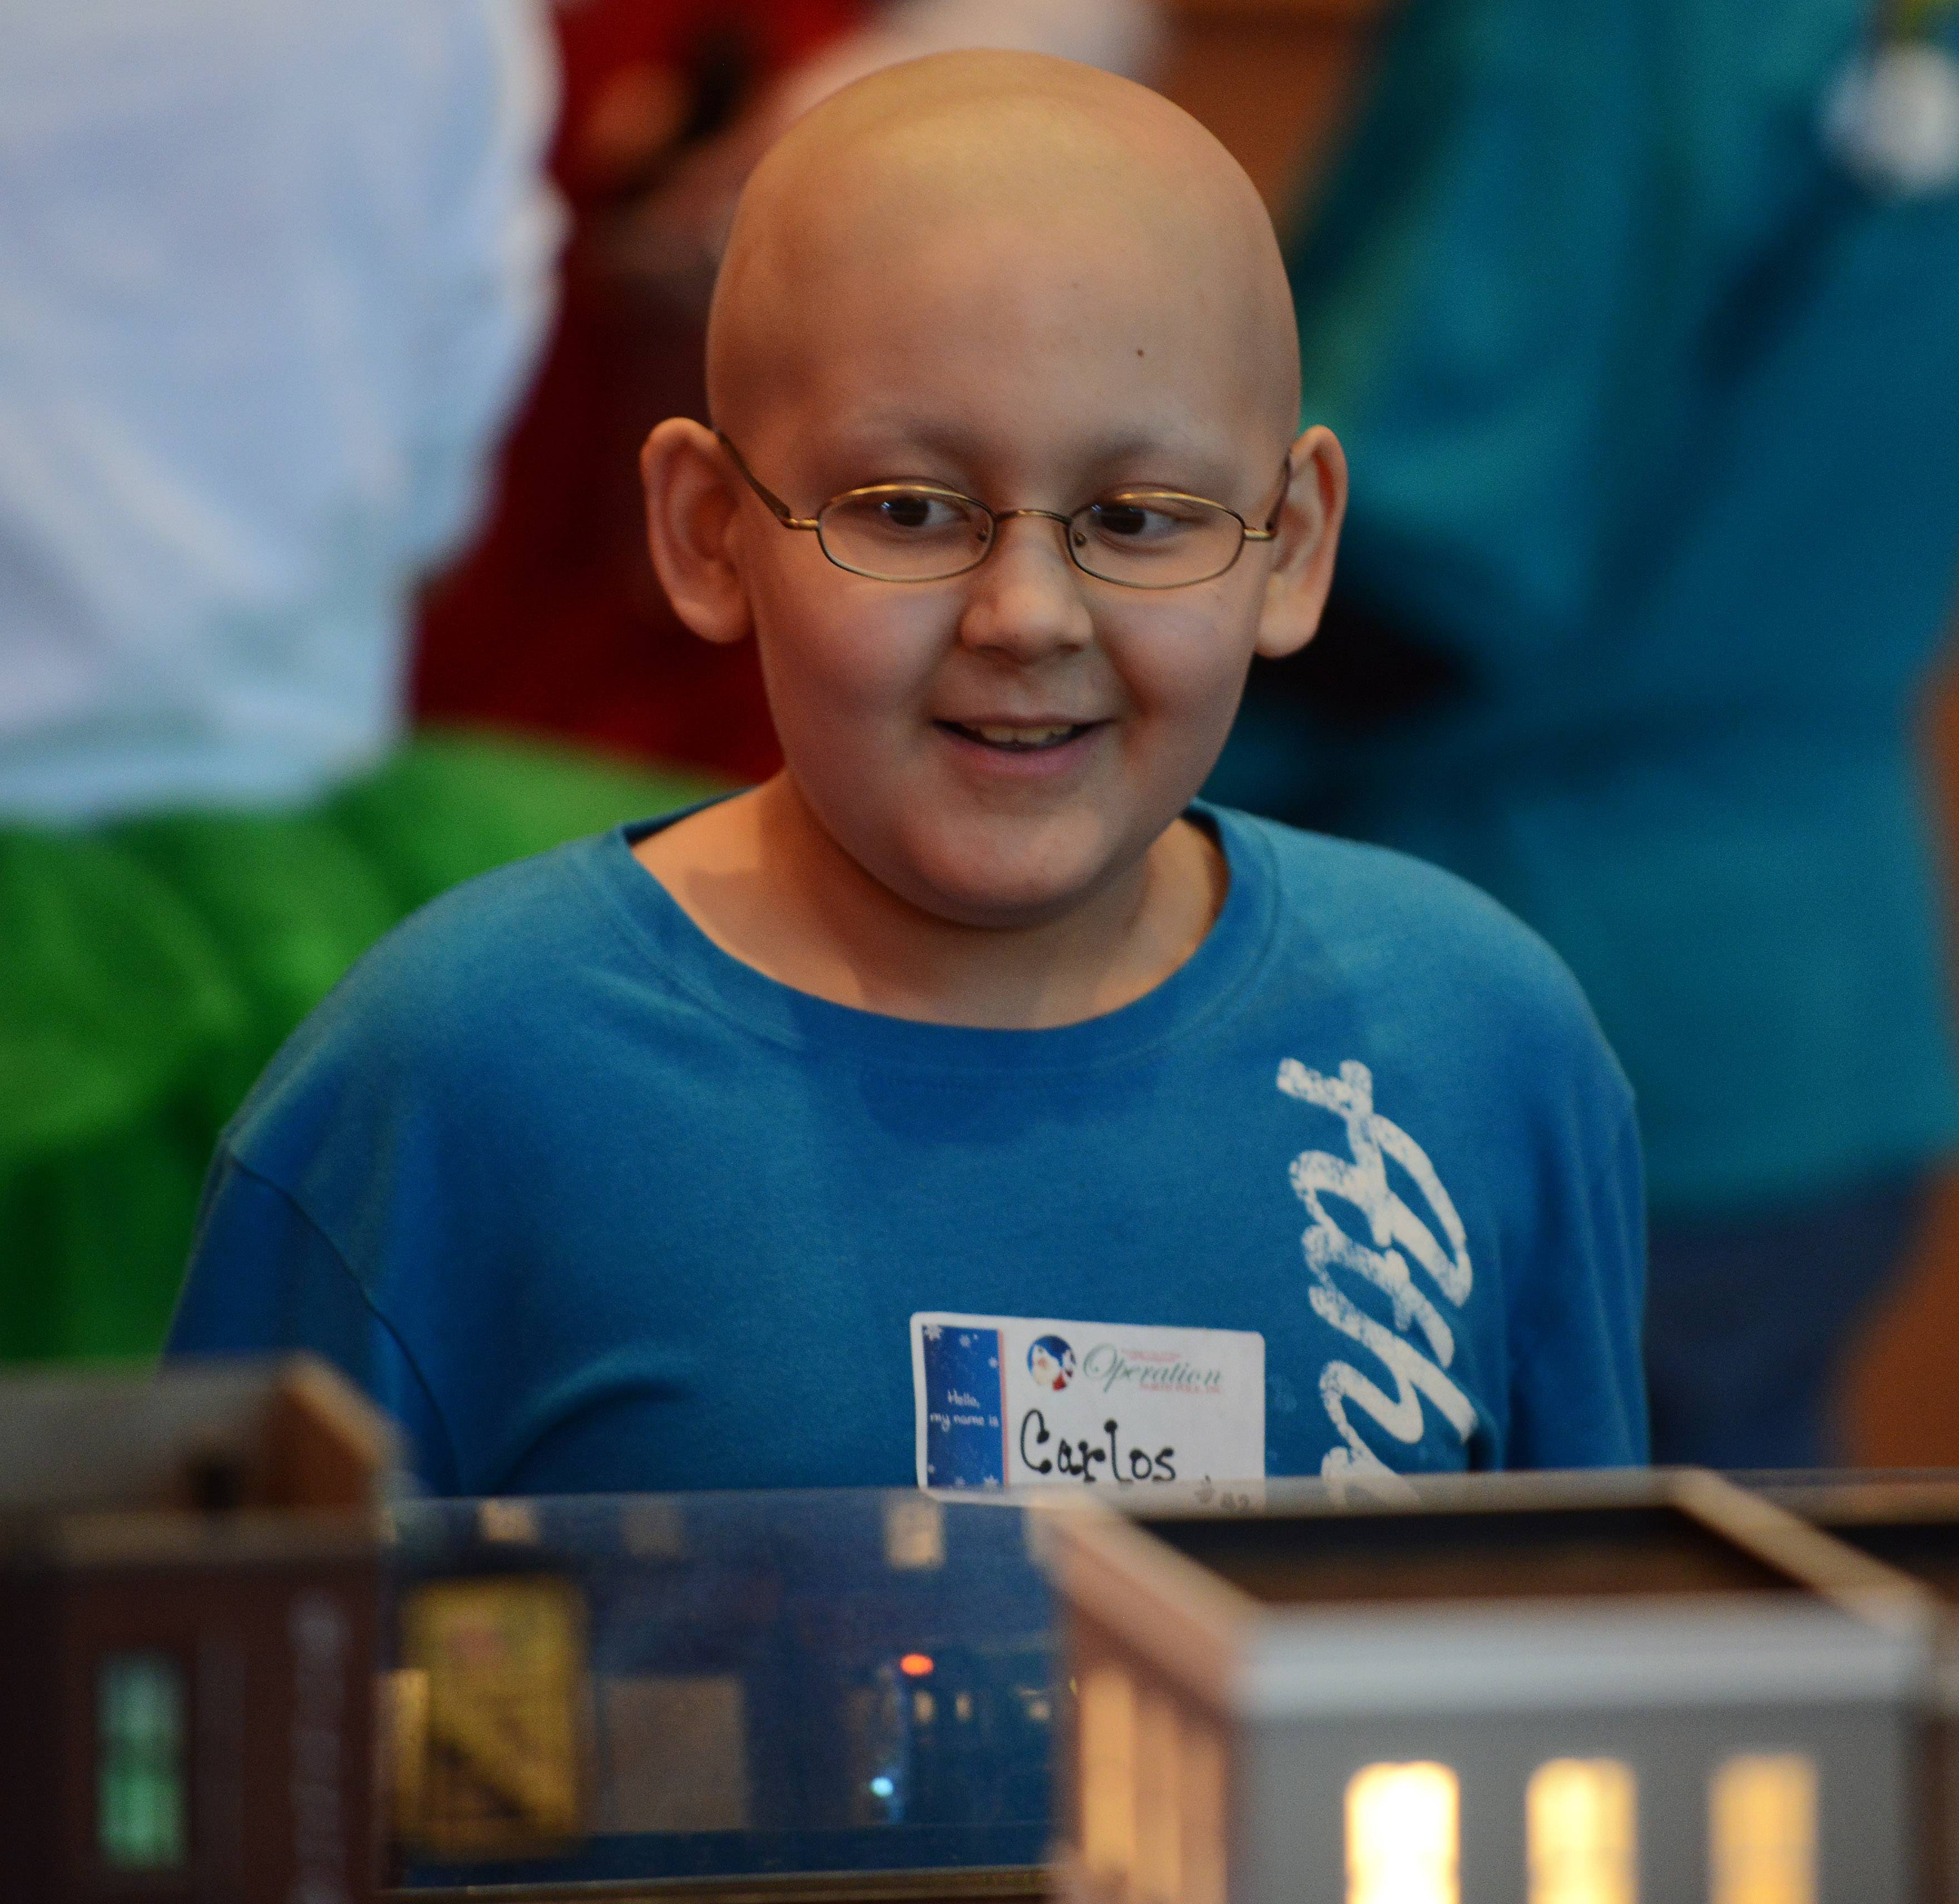 Carlos Romero, 7, of Aurora is thrilled with some model trains as part of Operation North Pole, an event for children with life-threatening illnesses.